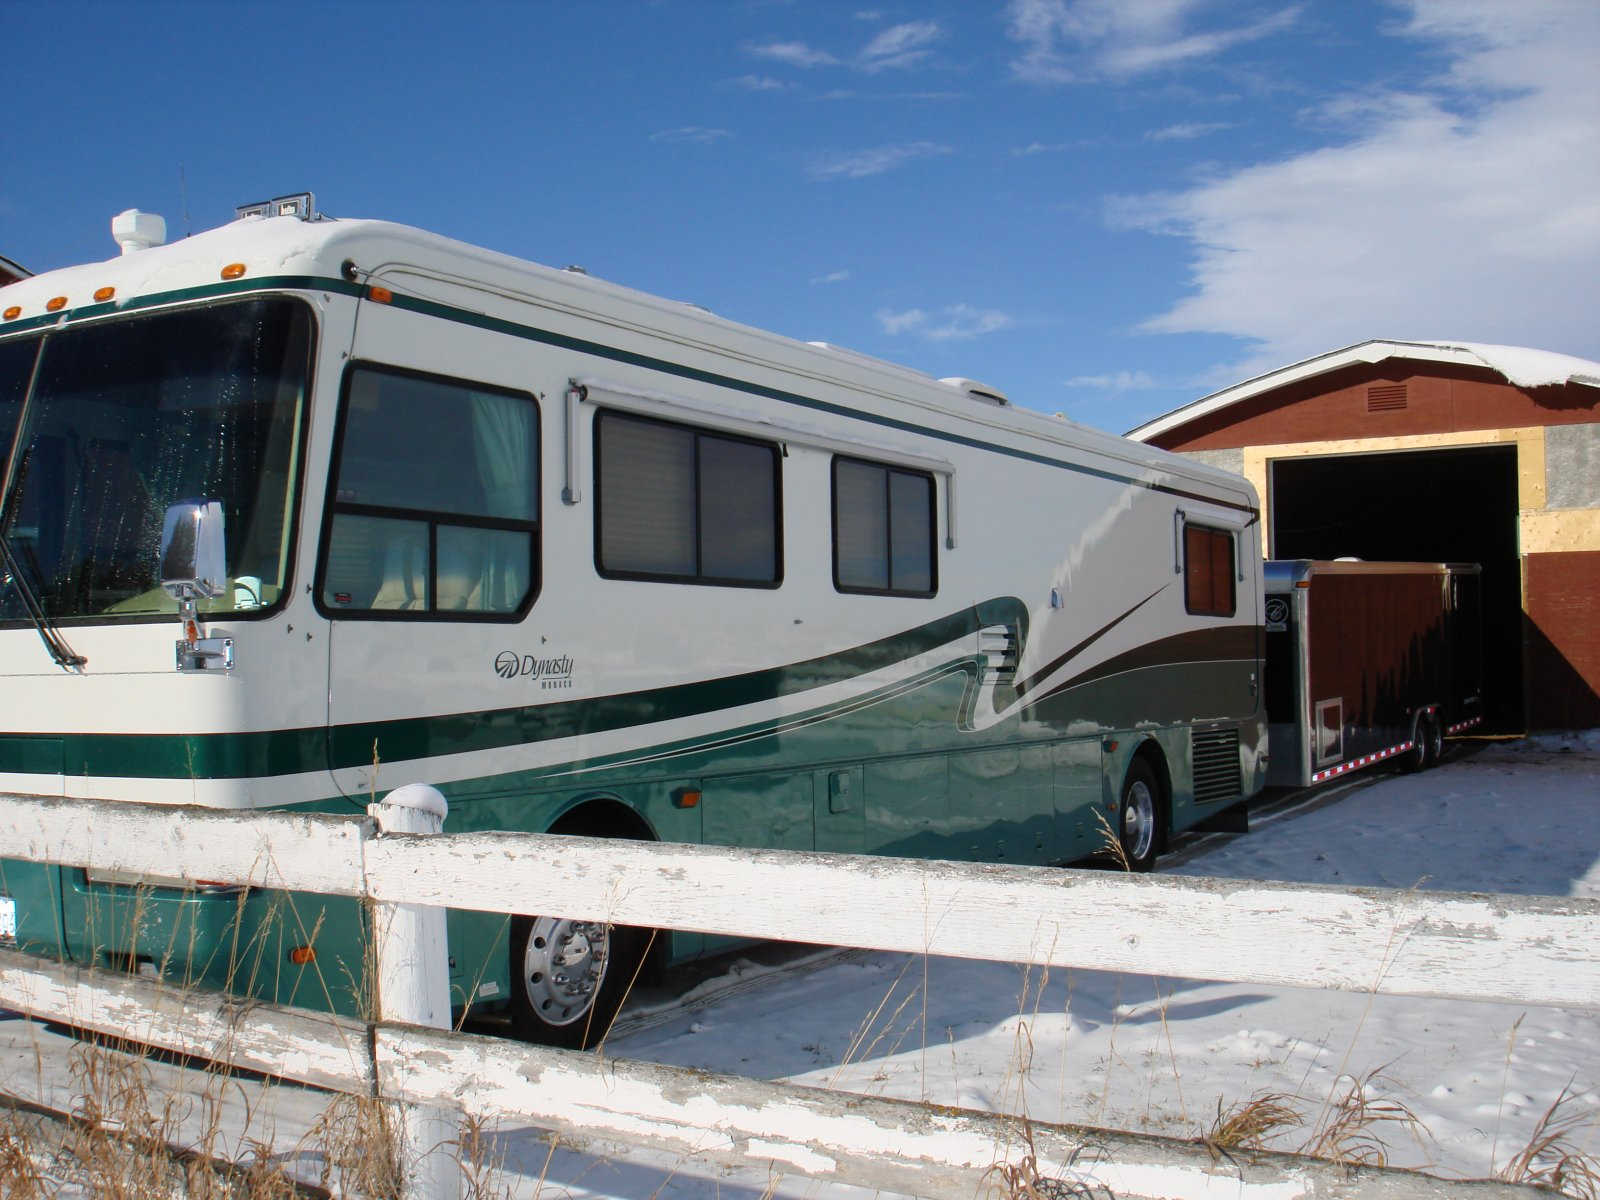 Click image for larger version  Name:motorhome 008 - Copy.jpg Views:66 Size:289.6 KB ID:28445